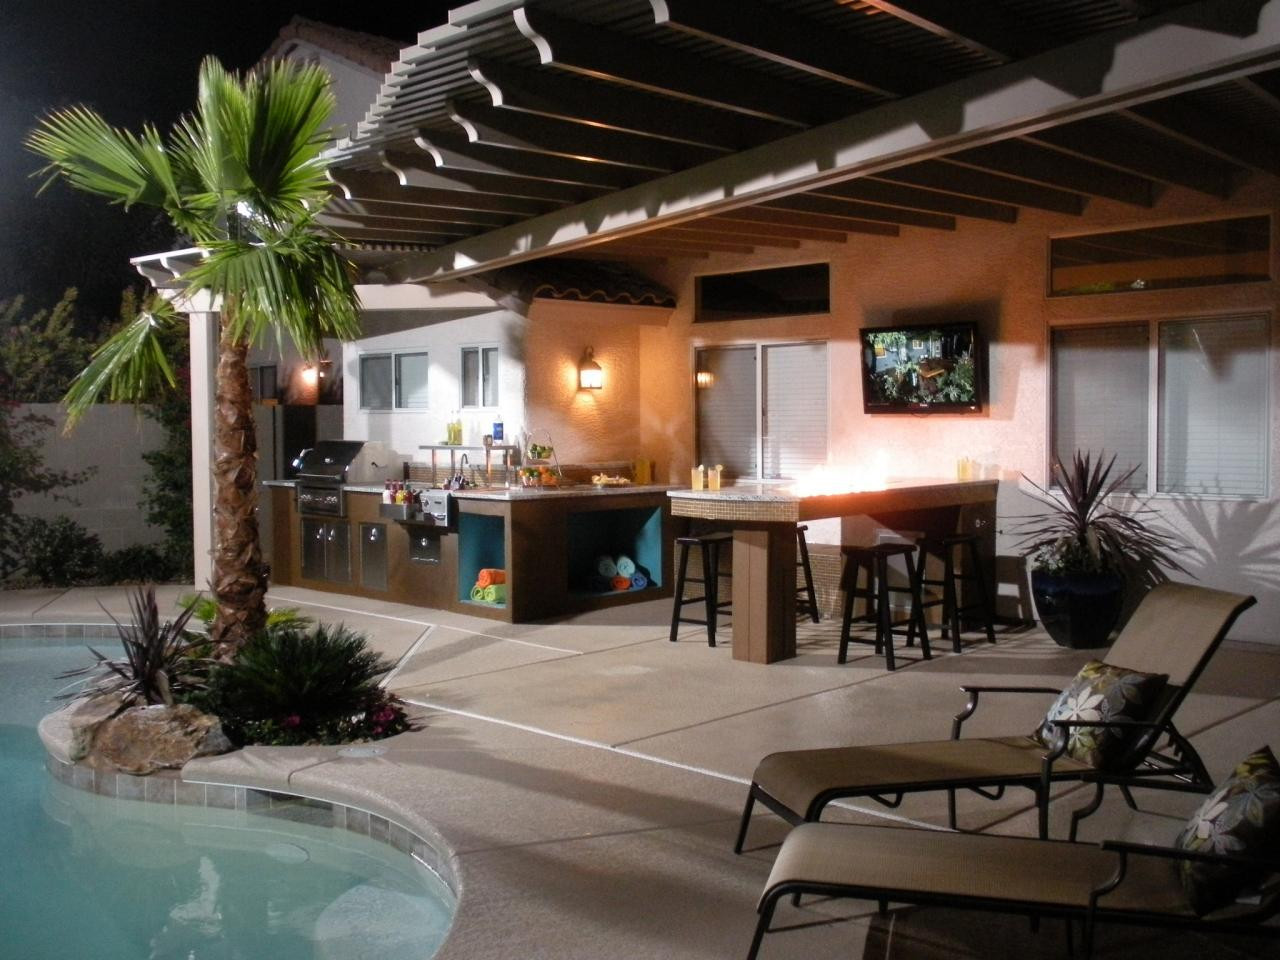 Best ideas about Patio Kitchen Ideas . Save or Pin Outdoor Kitchen Designing The Perfect Backyard Cooking Now.